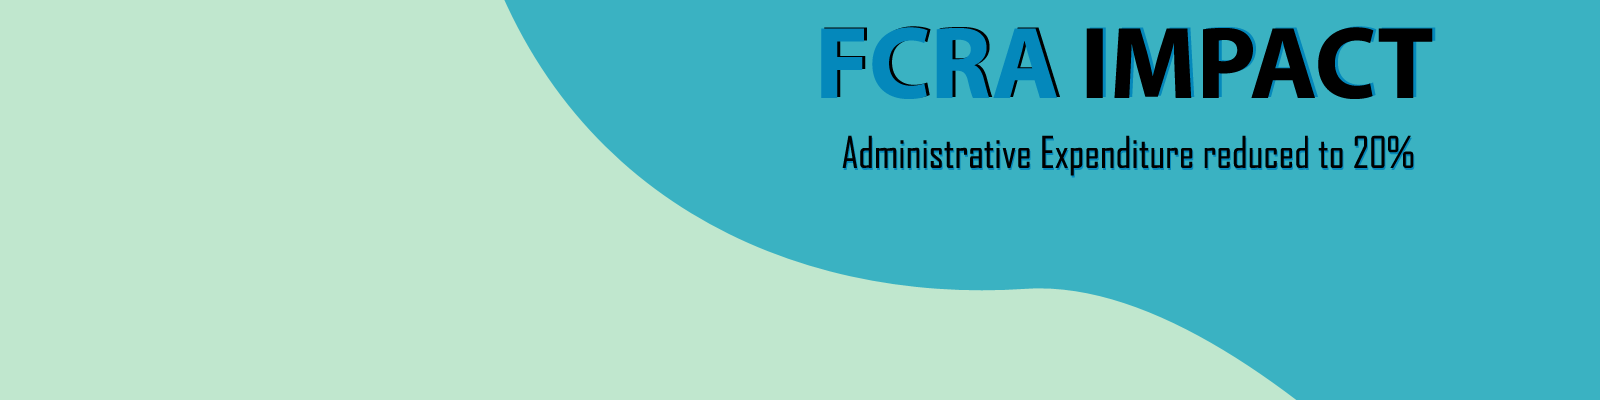 E-communique released on FCRA IMPACT - Administrative Expenditure